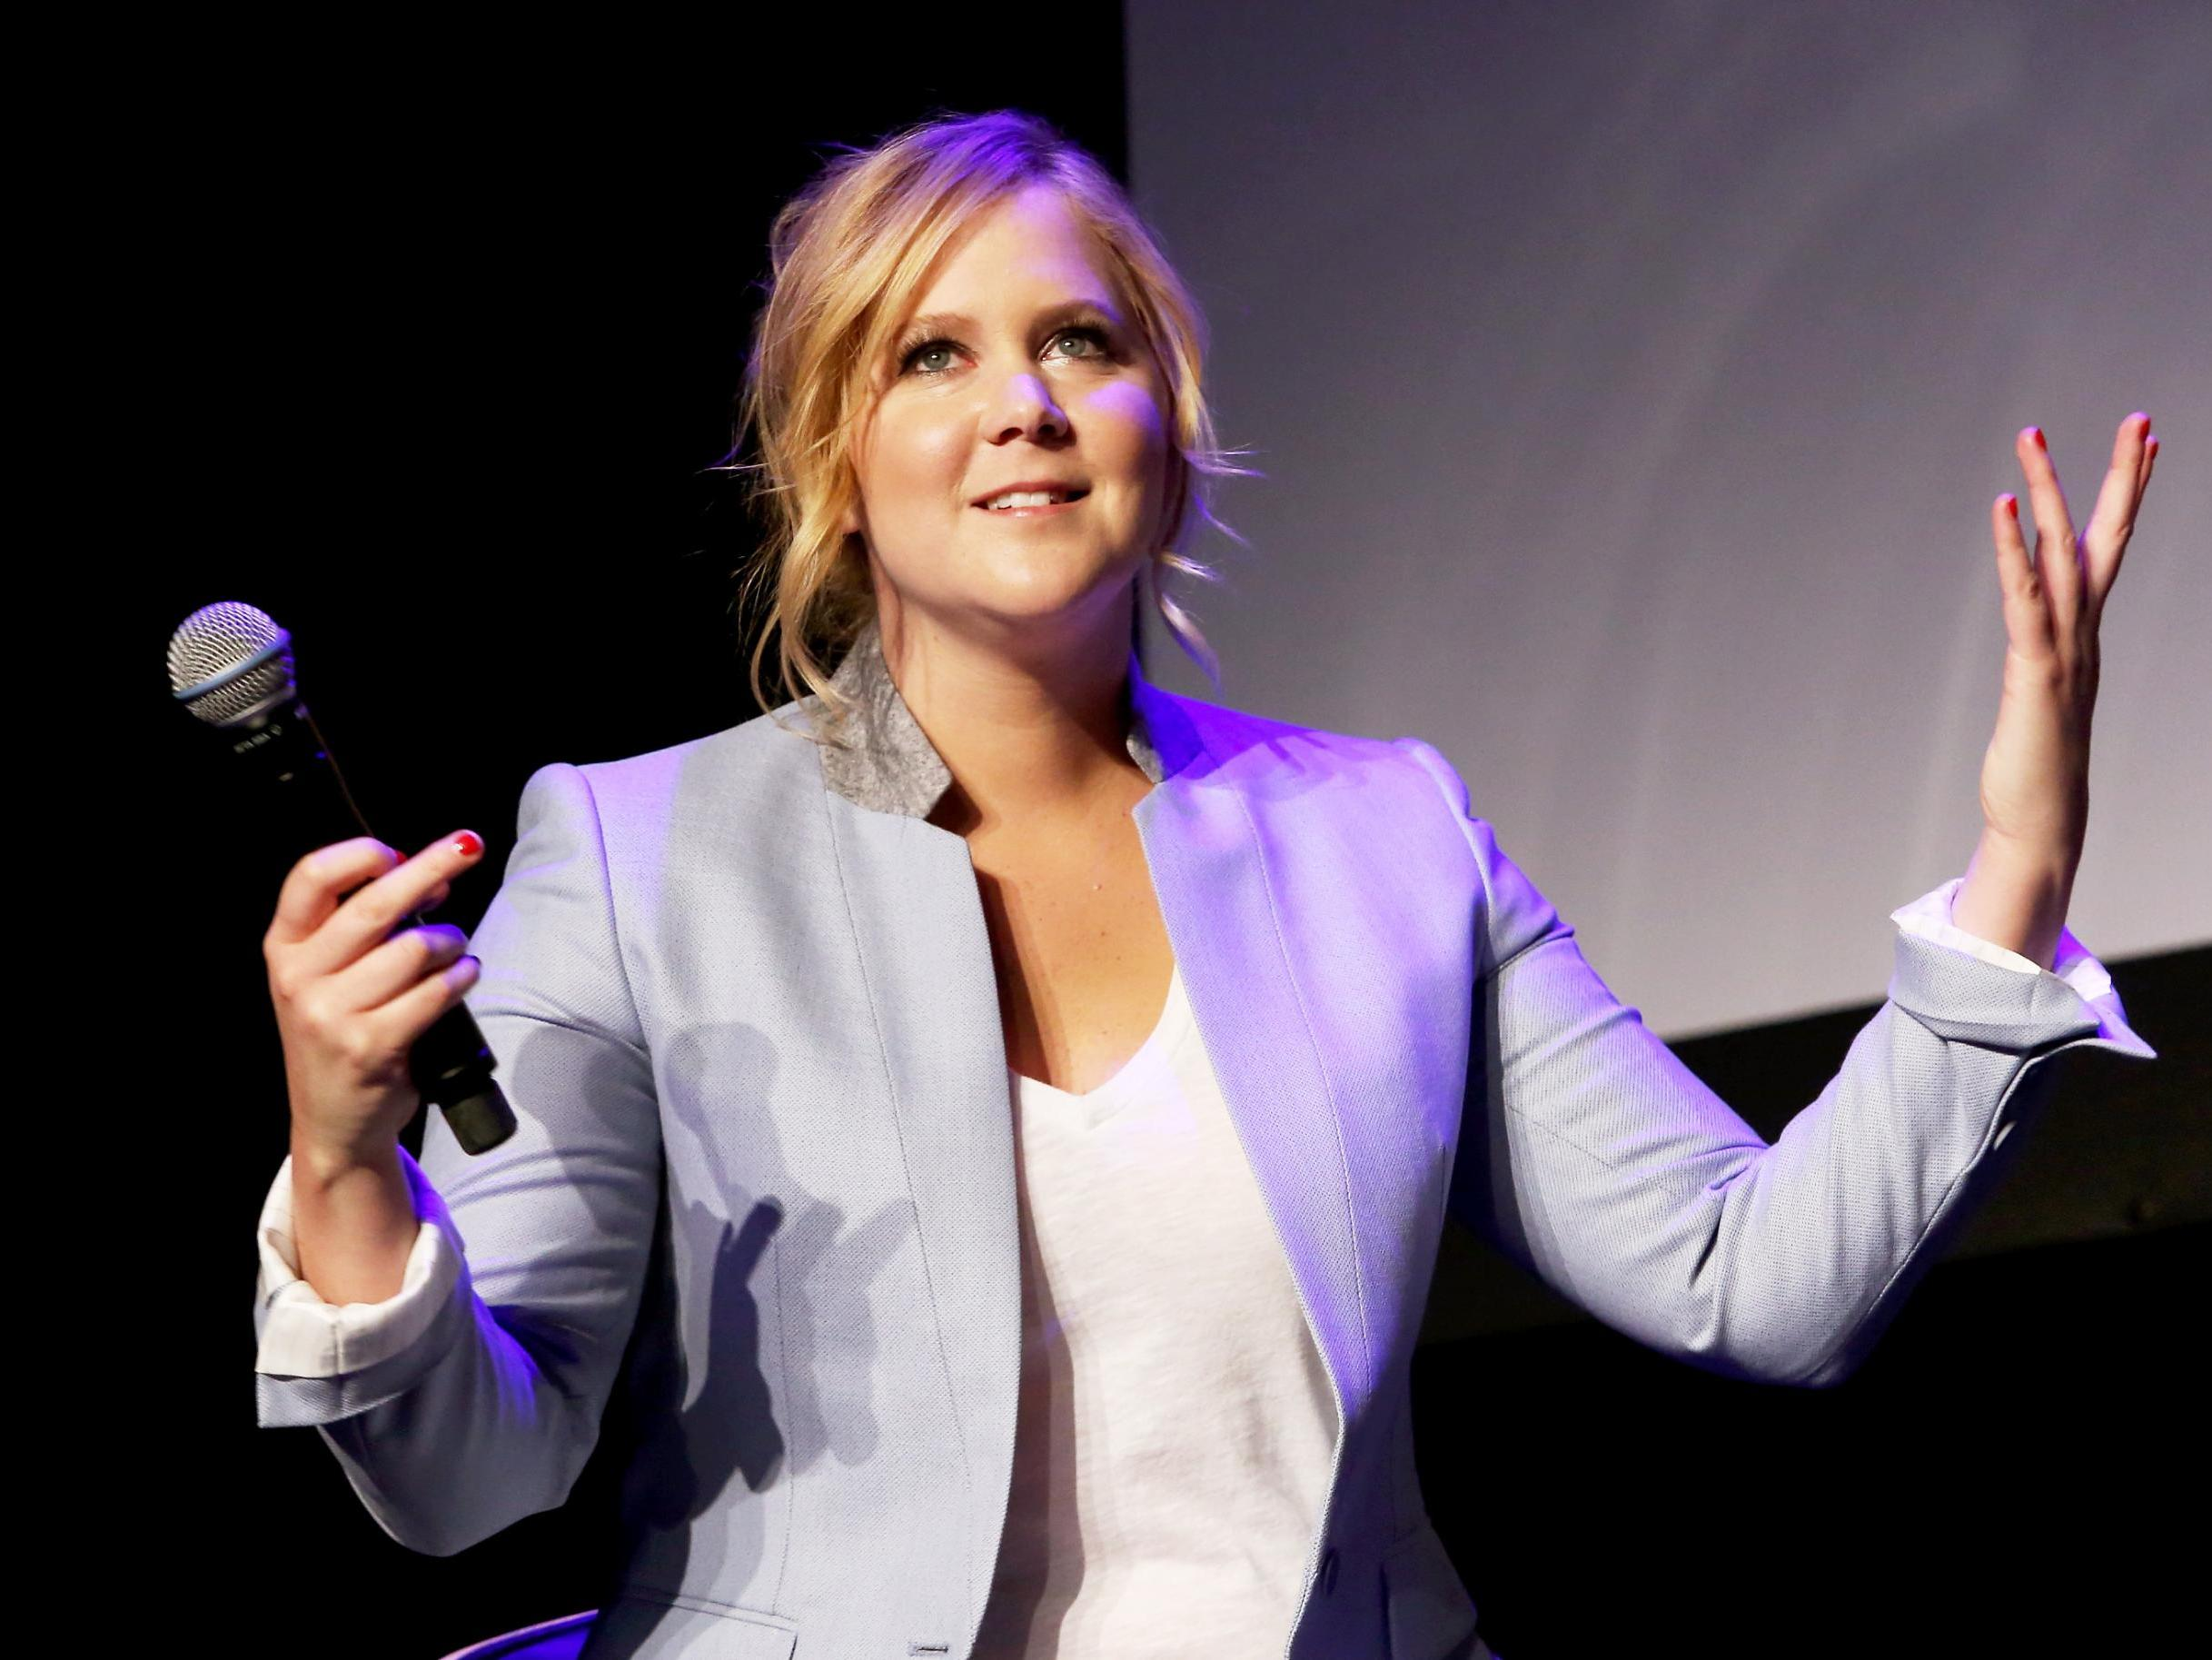 Amy Schumer features in exhibition celebrating hundreds of postpartum bodies